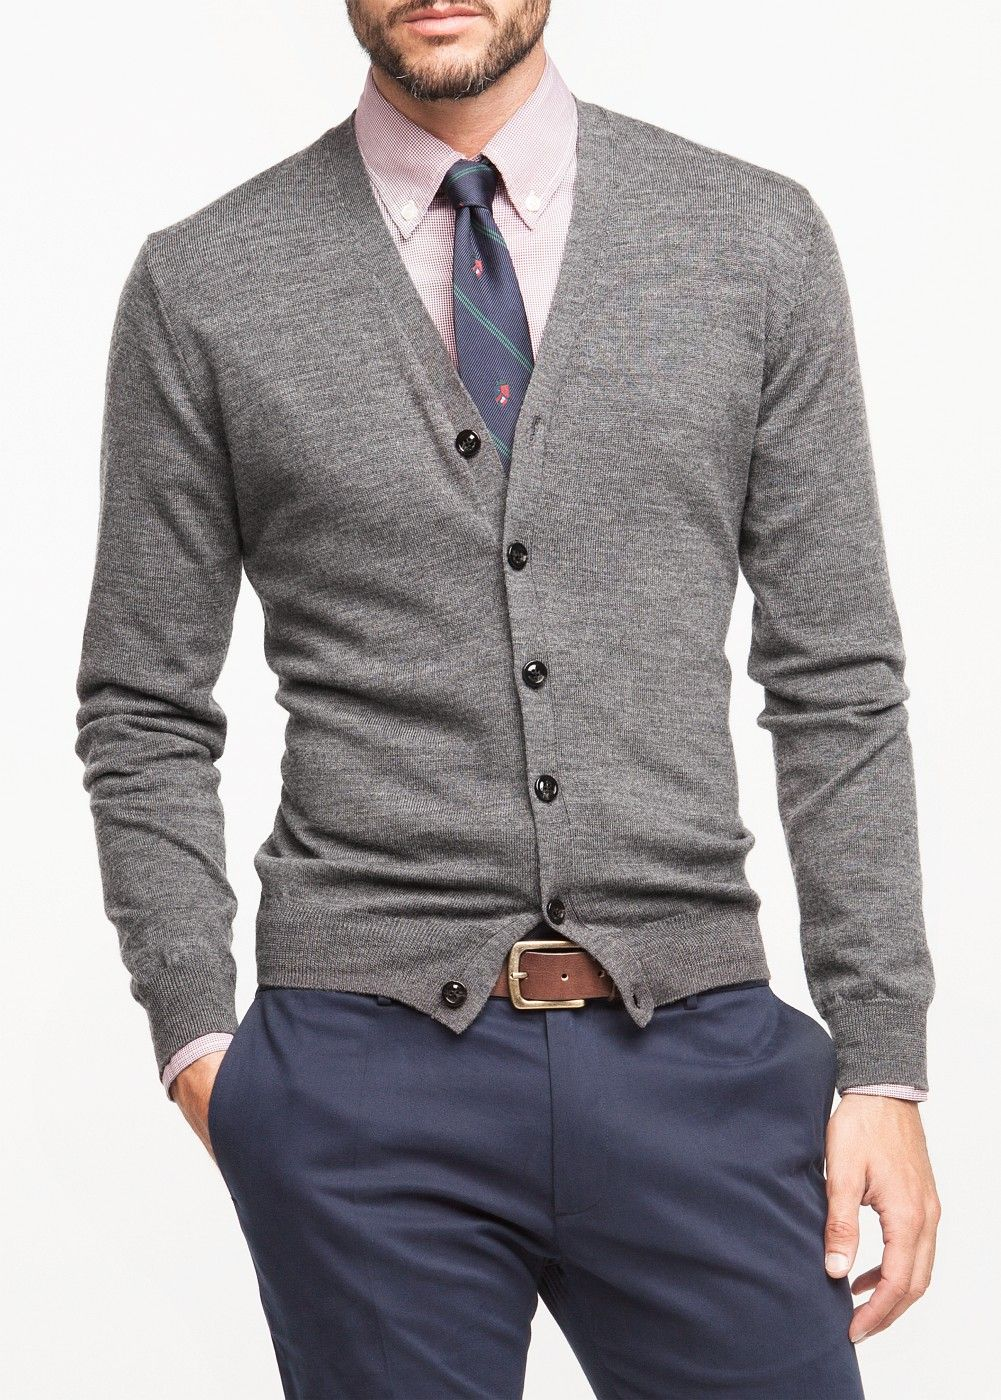 Shop online for Men's Cardigan Sweaters & Jackets at gravitybox.ga Find zip-front & button styles. Free Shipping. Free Returns. All the time.